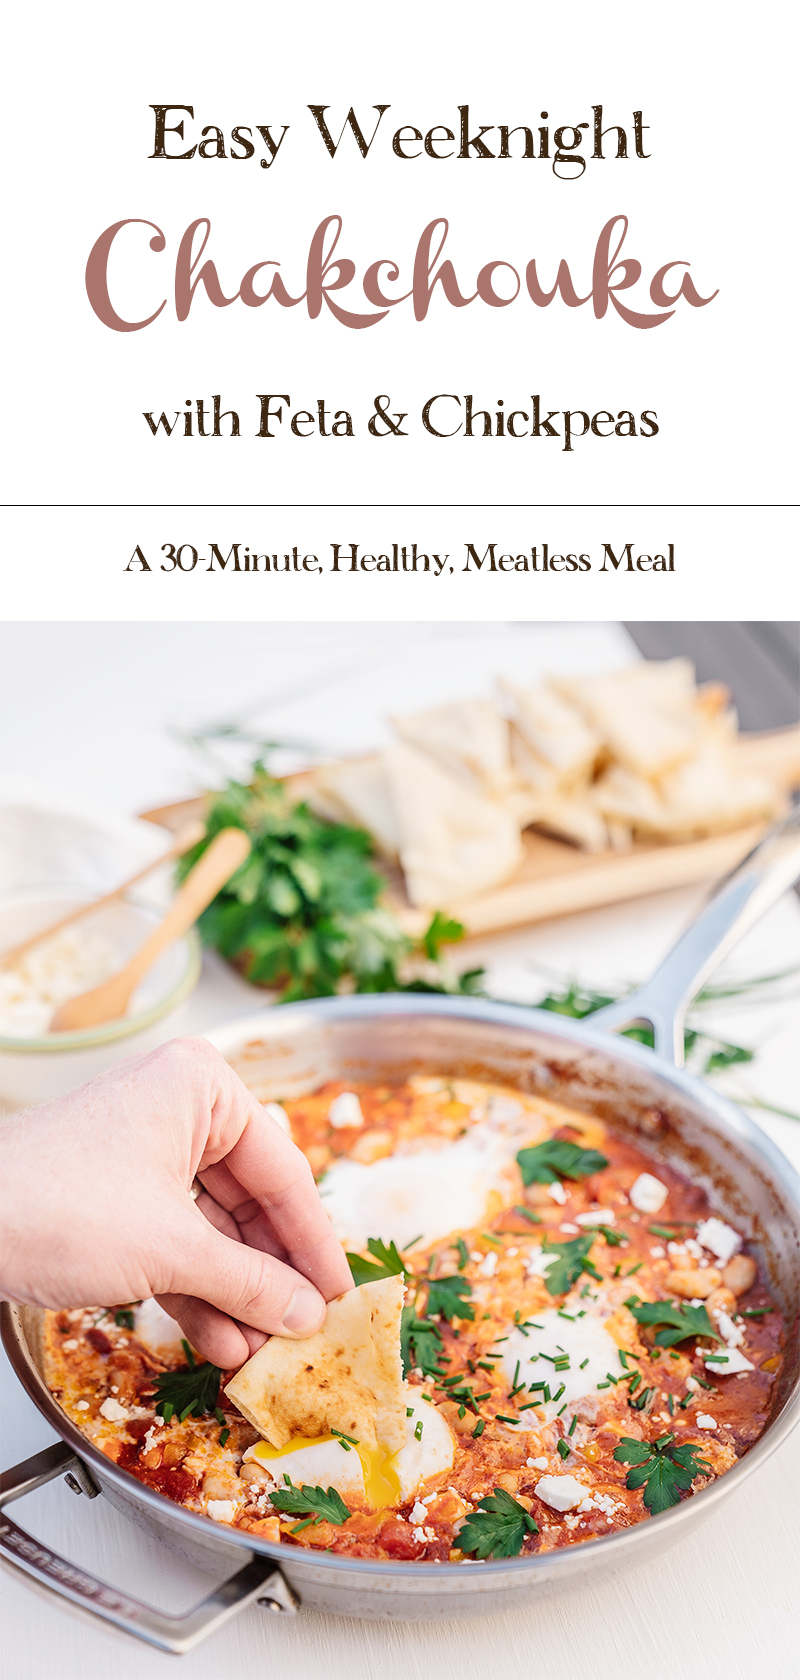 Easy-Healthy-Weeknight-Chakchouka-with-Chickpeas-and-Feta